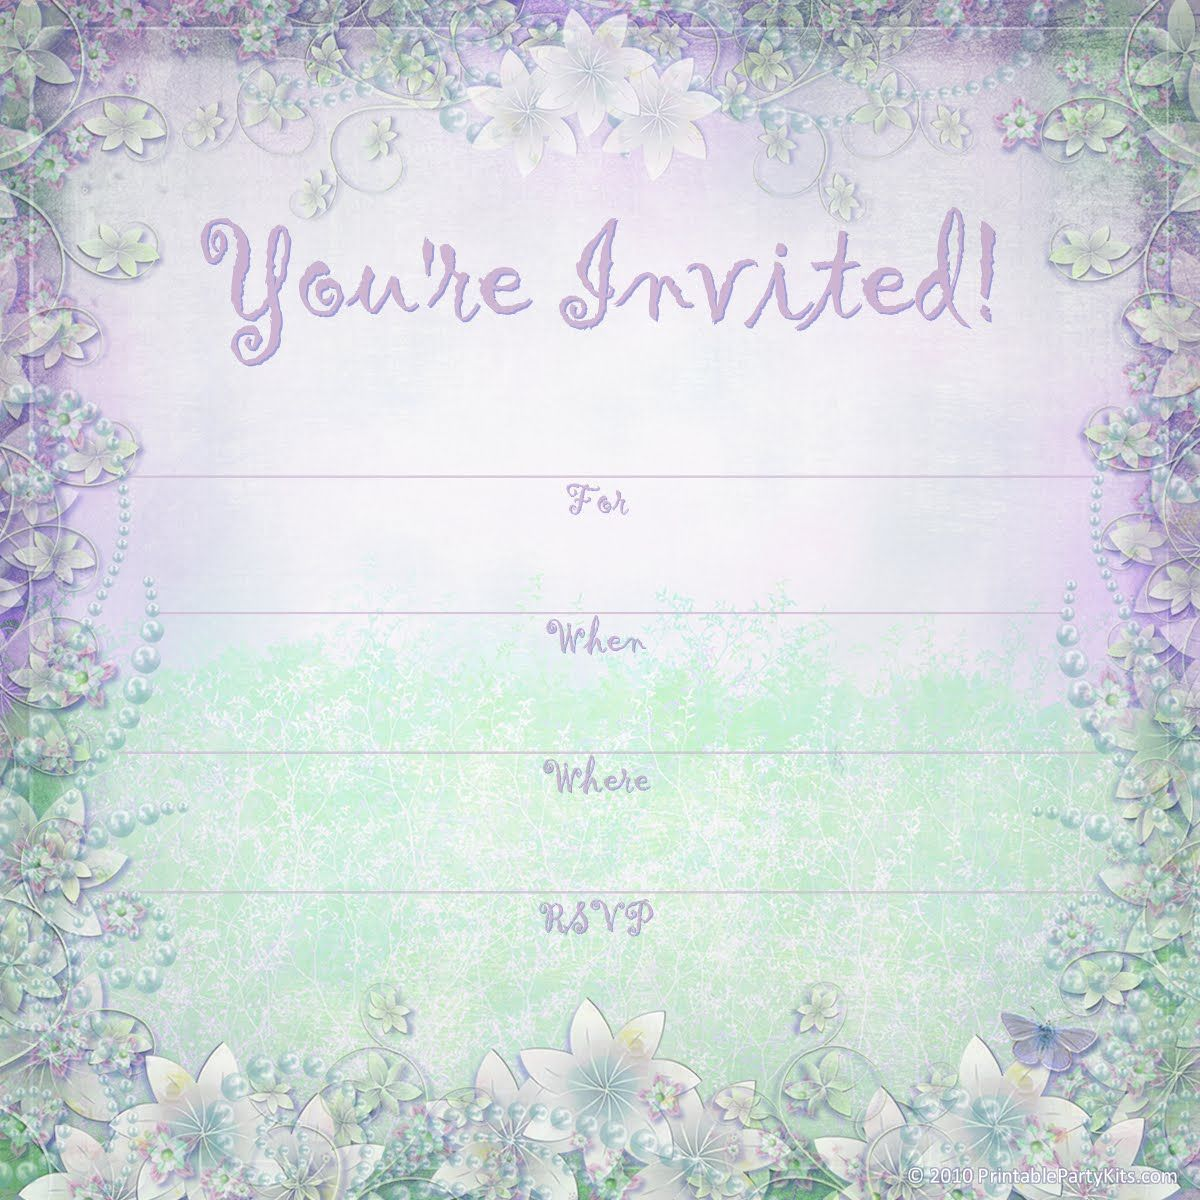 free summer party invite templates | Kndls birthday | Pinterest ...